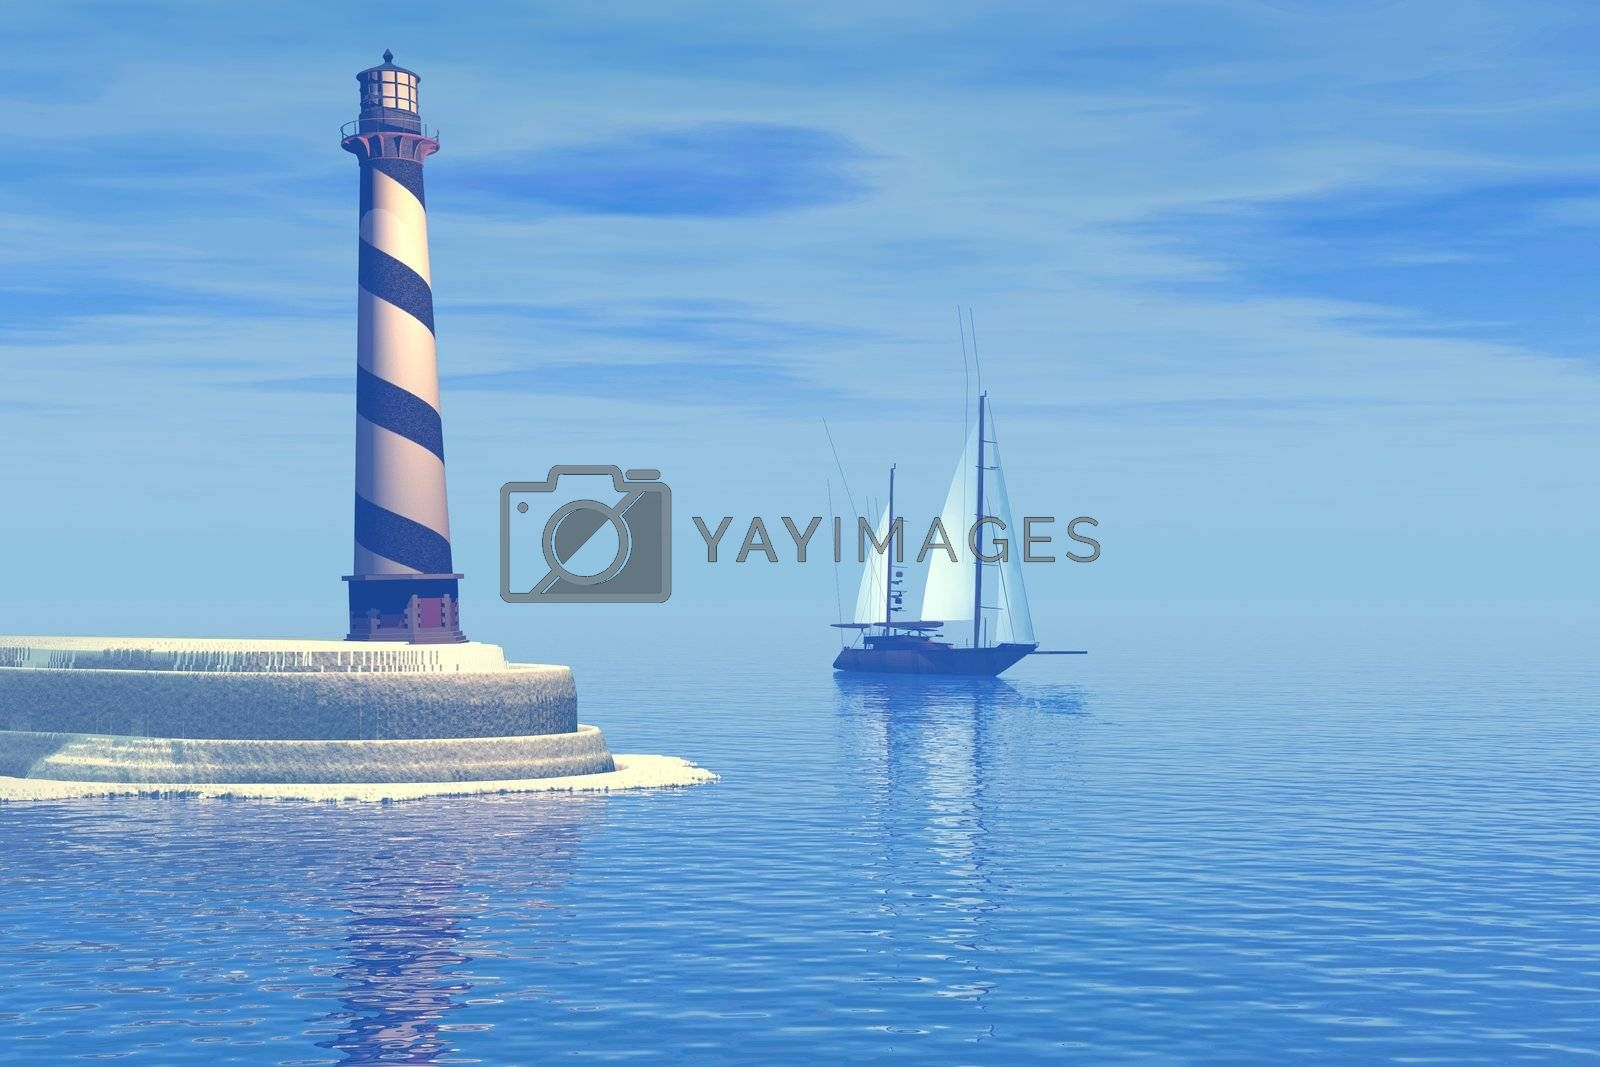 A sailboat passes the lighthouse.